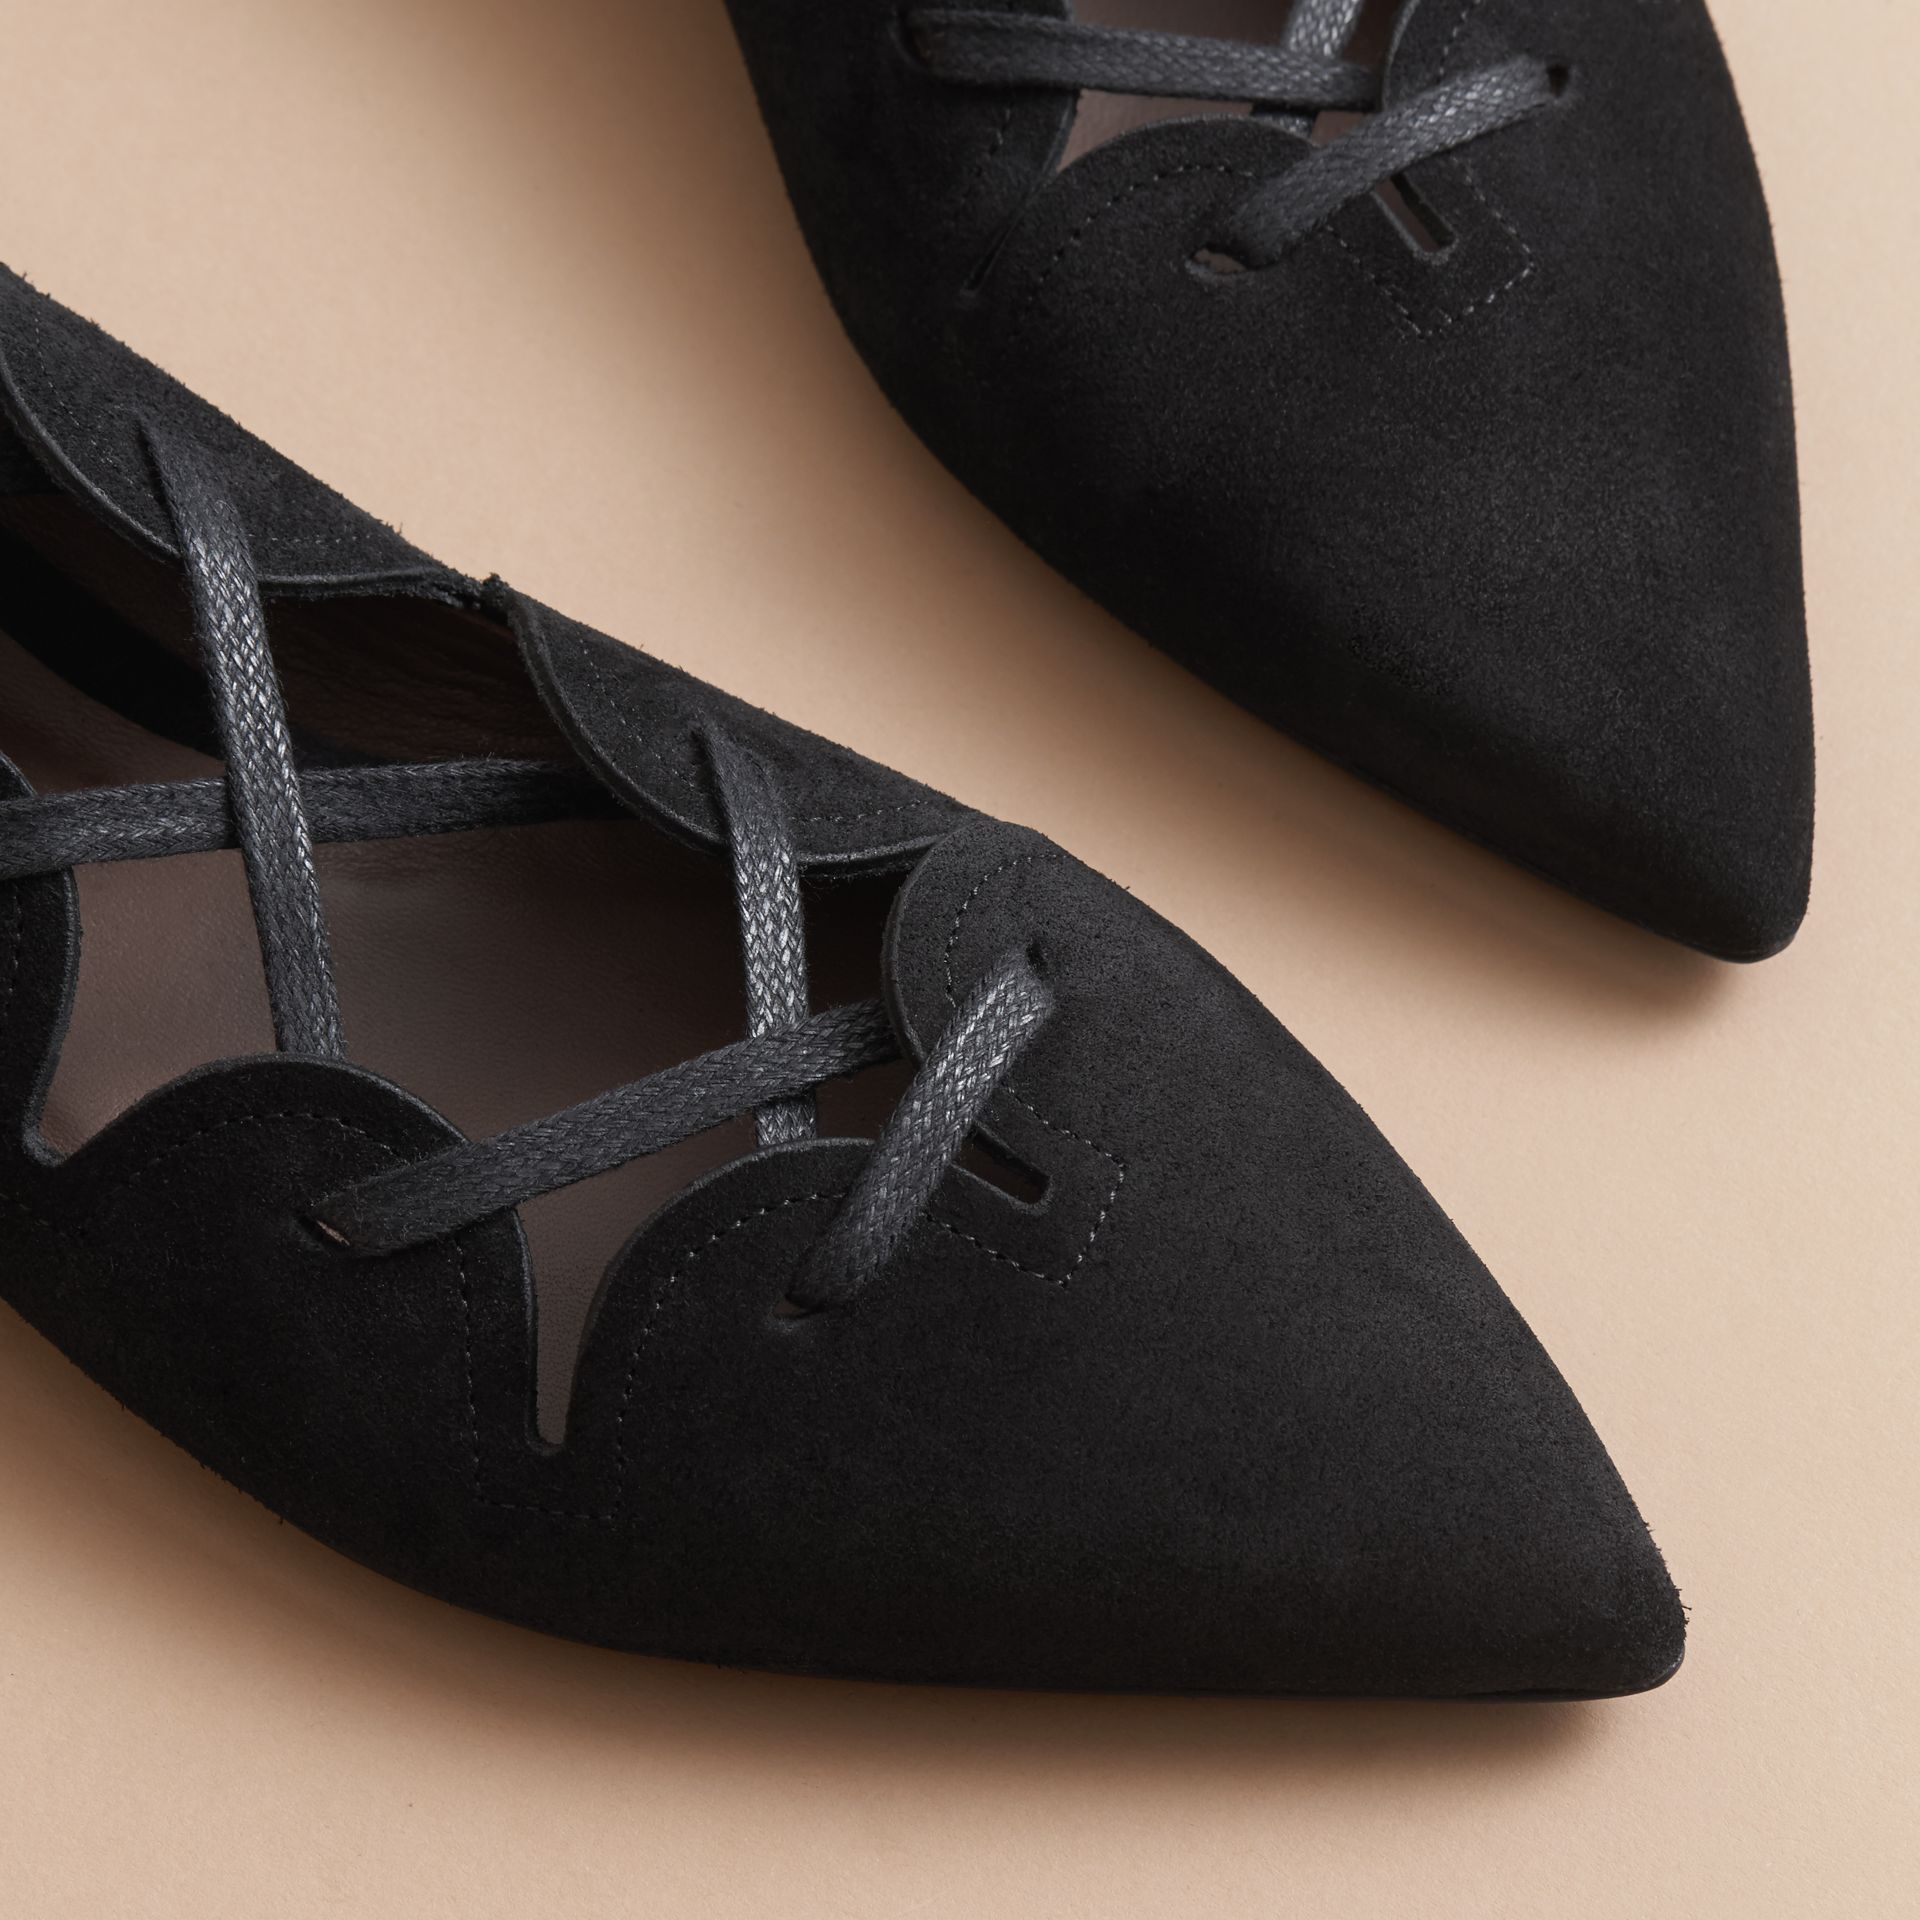 Scalloped Suede Lace-up Ballerinas in Black - Women | Burberry Australia - gallery image 5